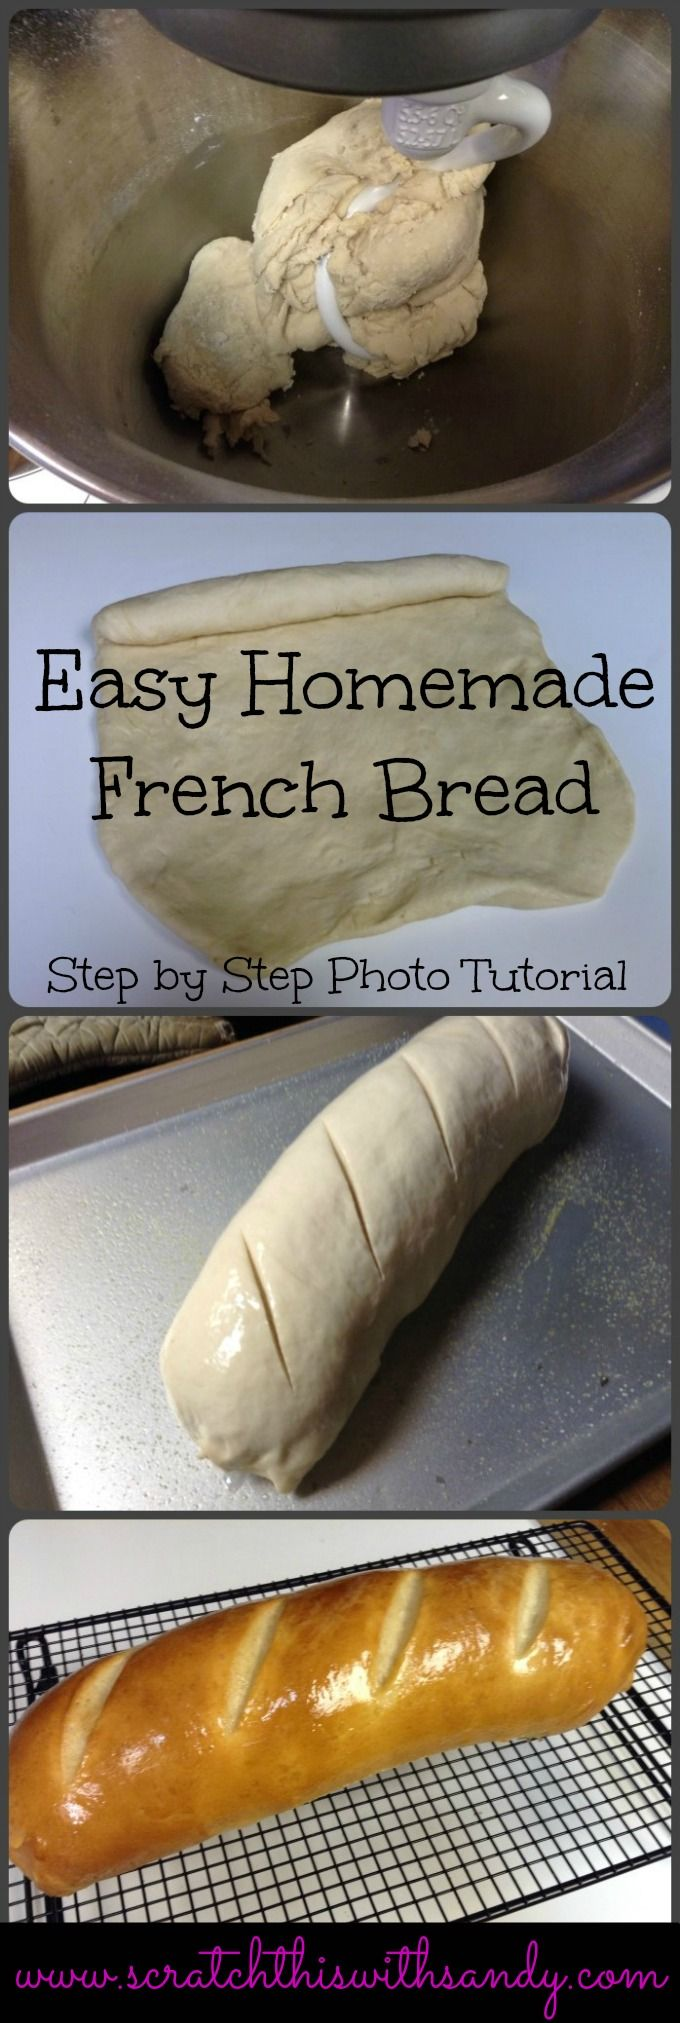 Easy French Bread Step by step photo tutorial